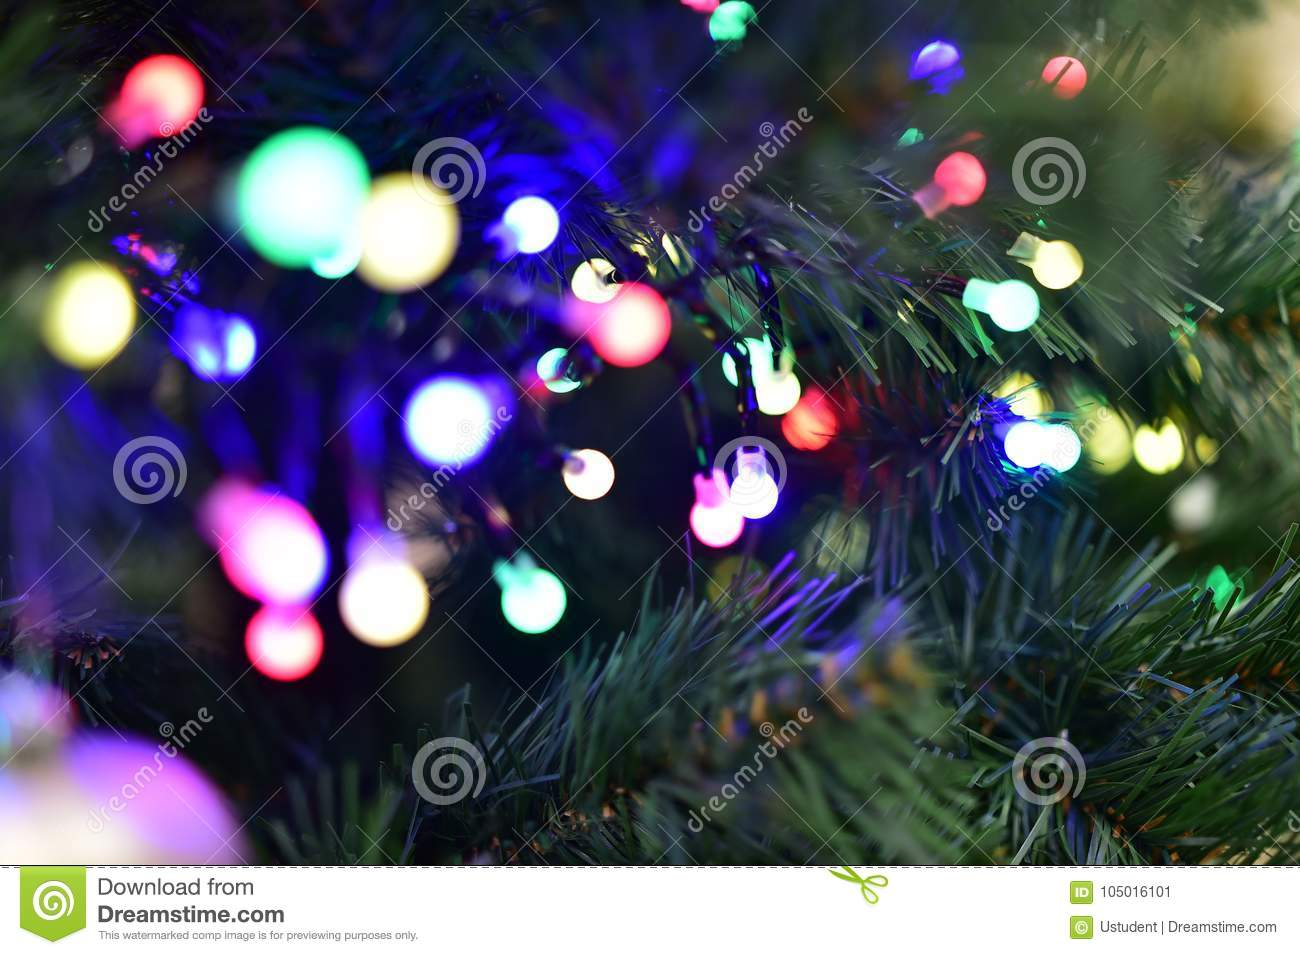 Christmas Tree With Garland Lights Of Different Colors Stock Image